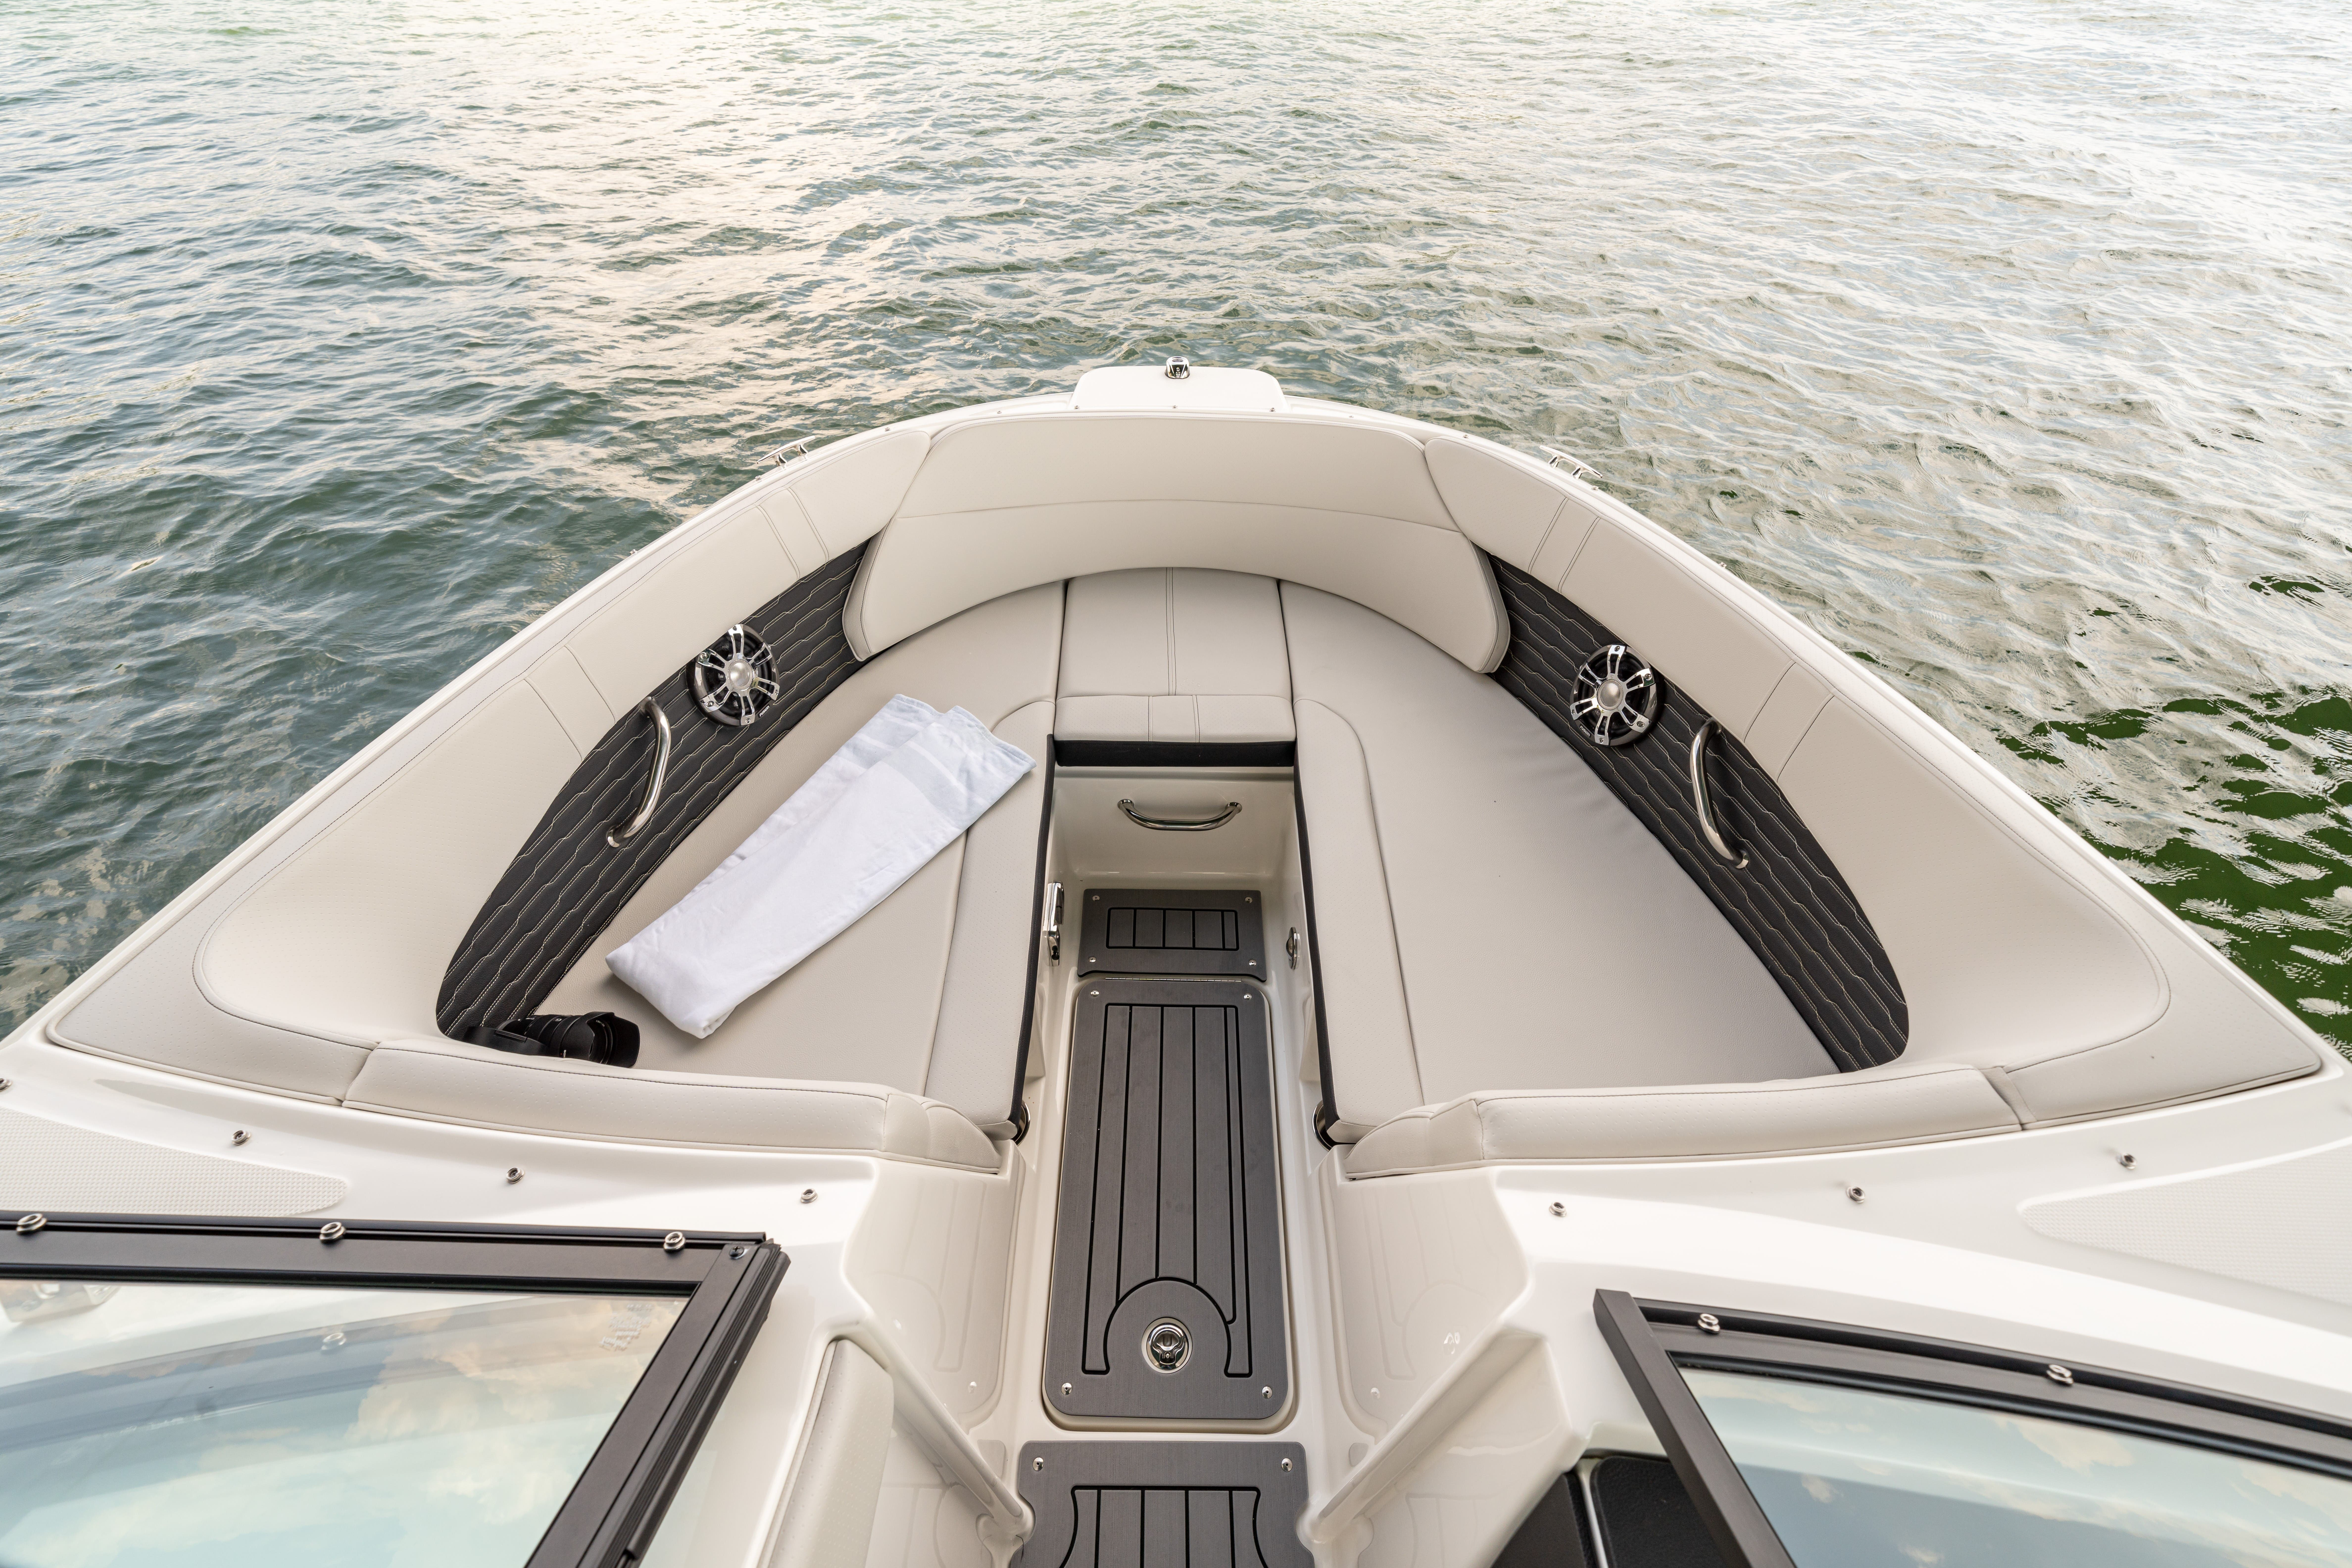 2022 Sea Ray boat for sale, model of the boat is 230spxo & Image # 6 of 6